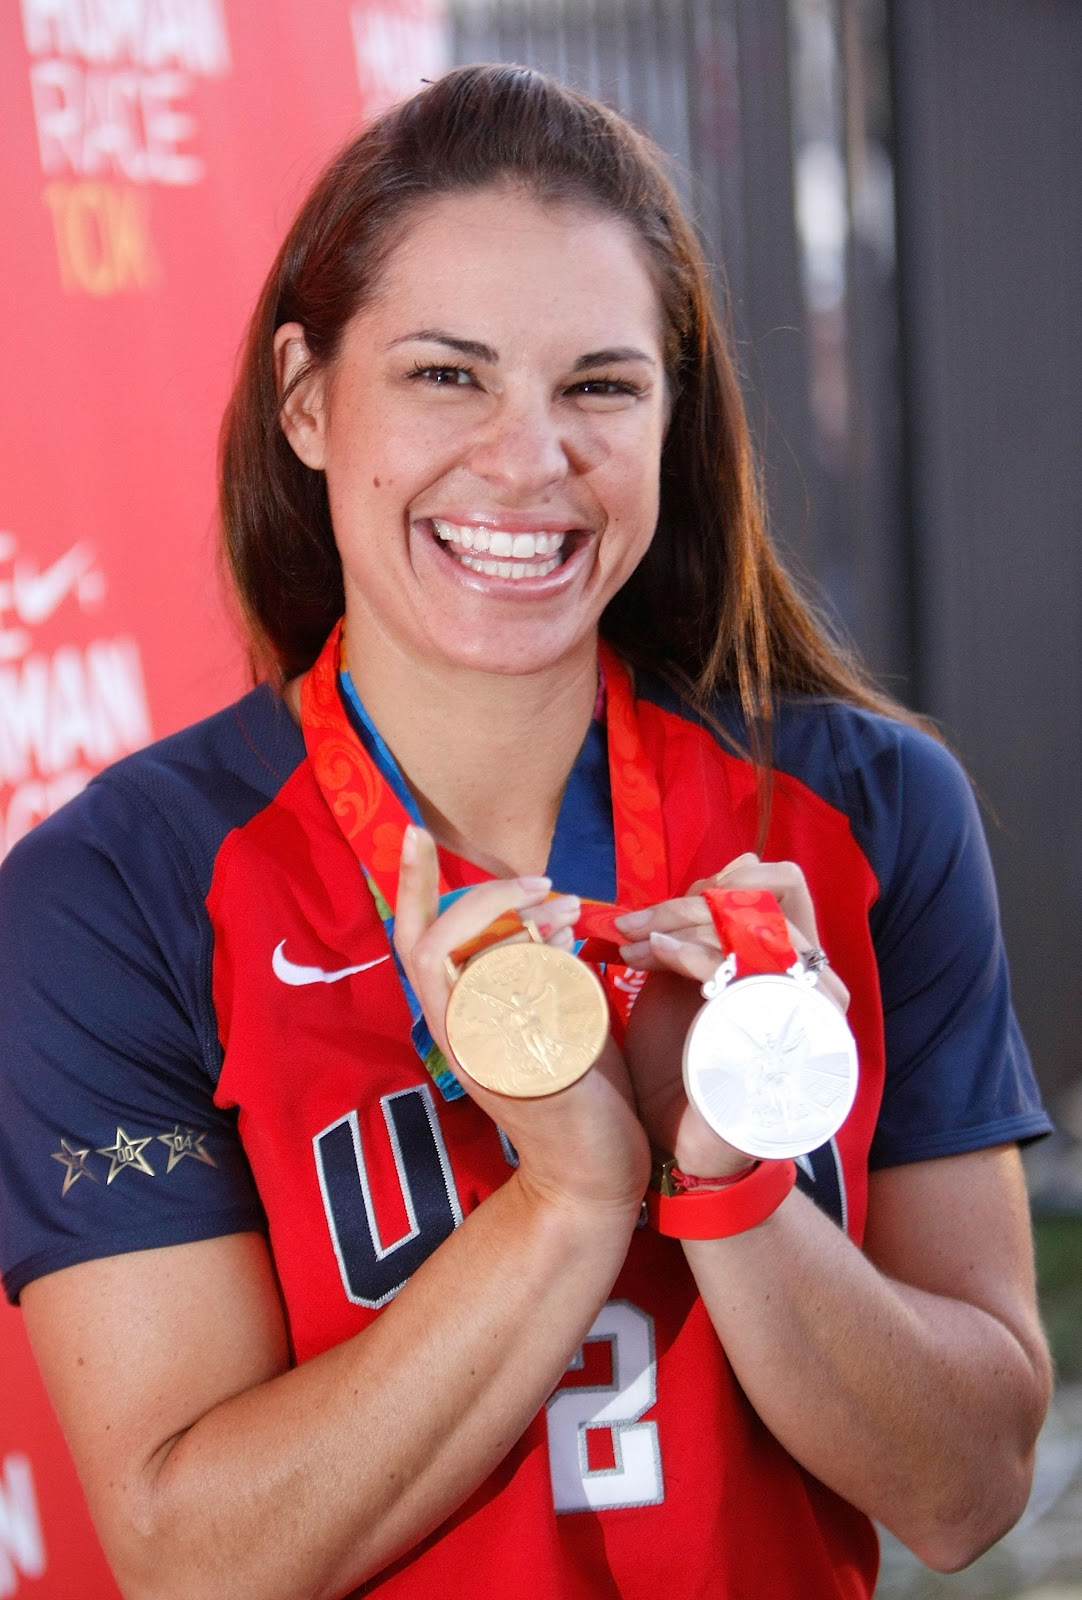 how tall is jessica mendoza